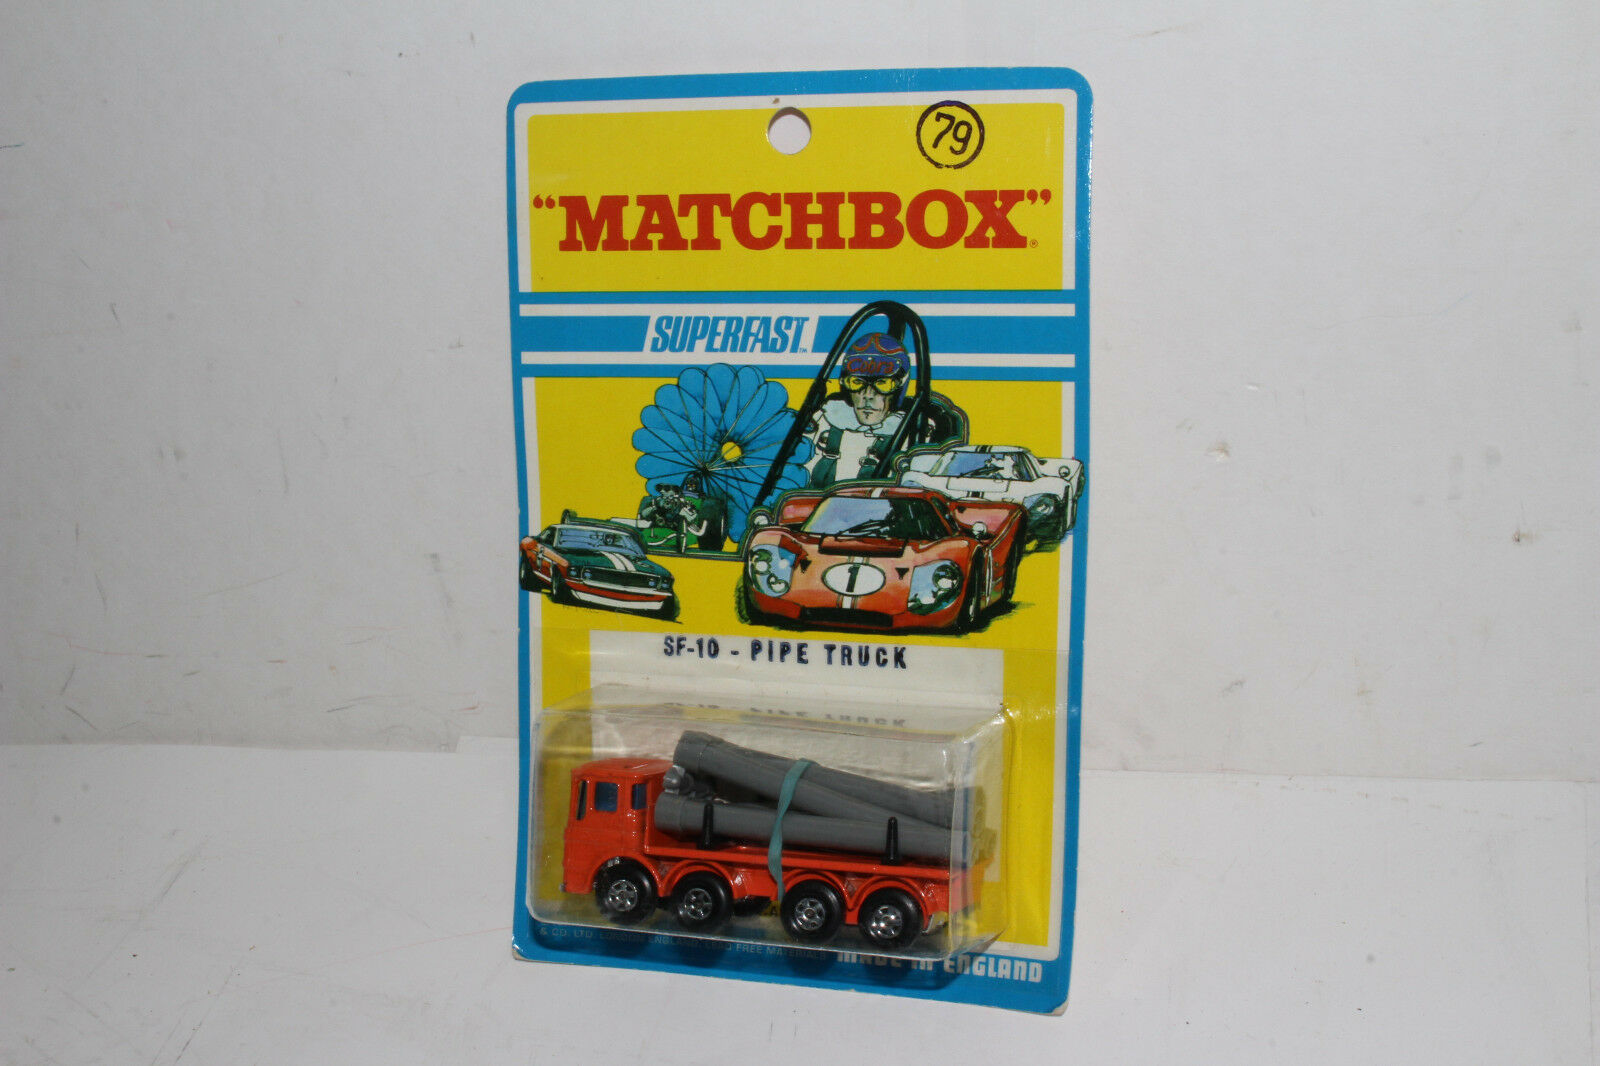 MATCHscatola SUPERFAST  10 LEYLe TUBO Camion, arancione, nuovo in blisterpack, lotto B